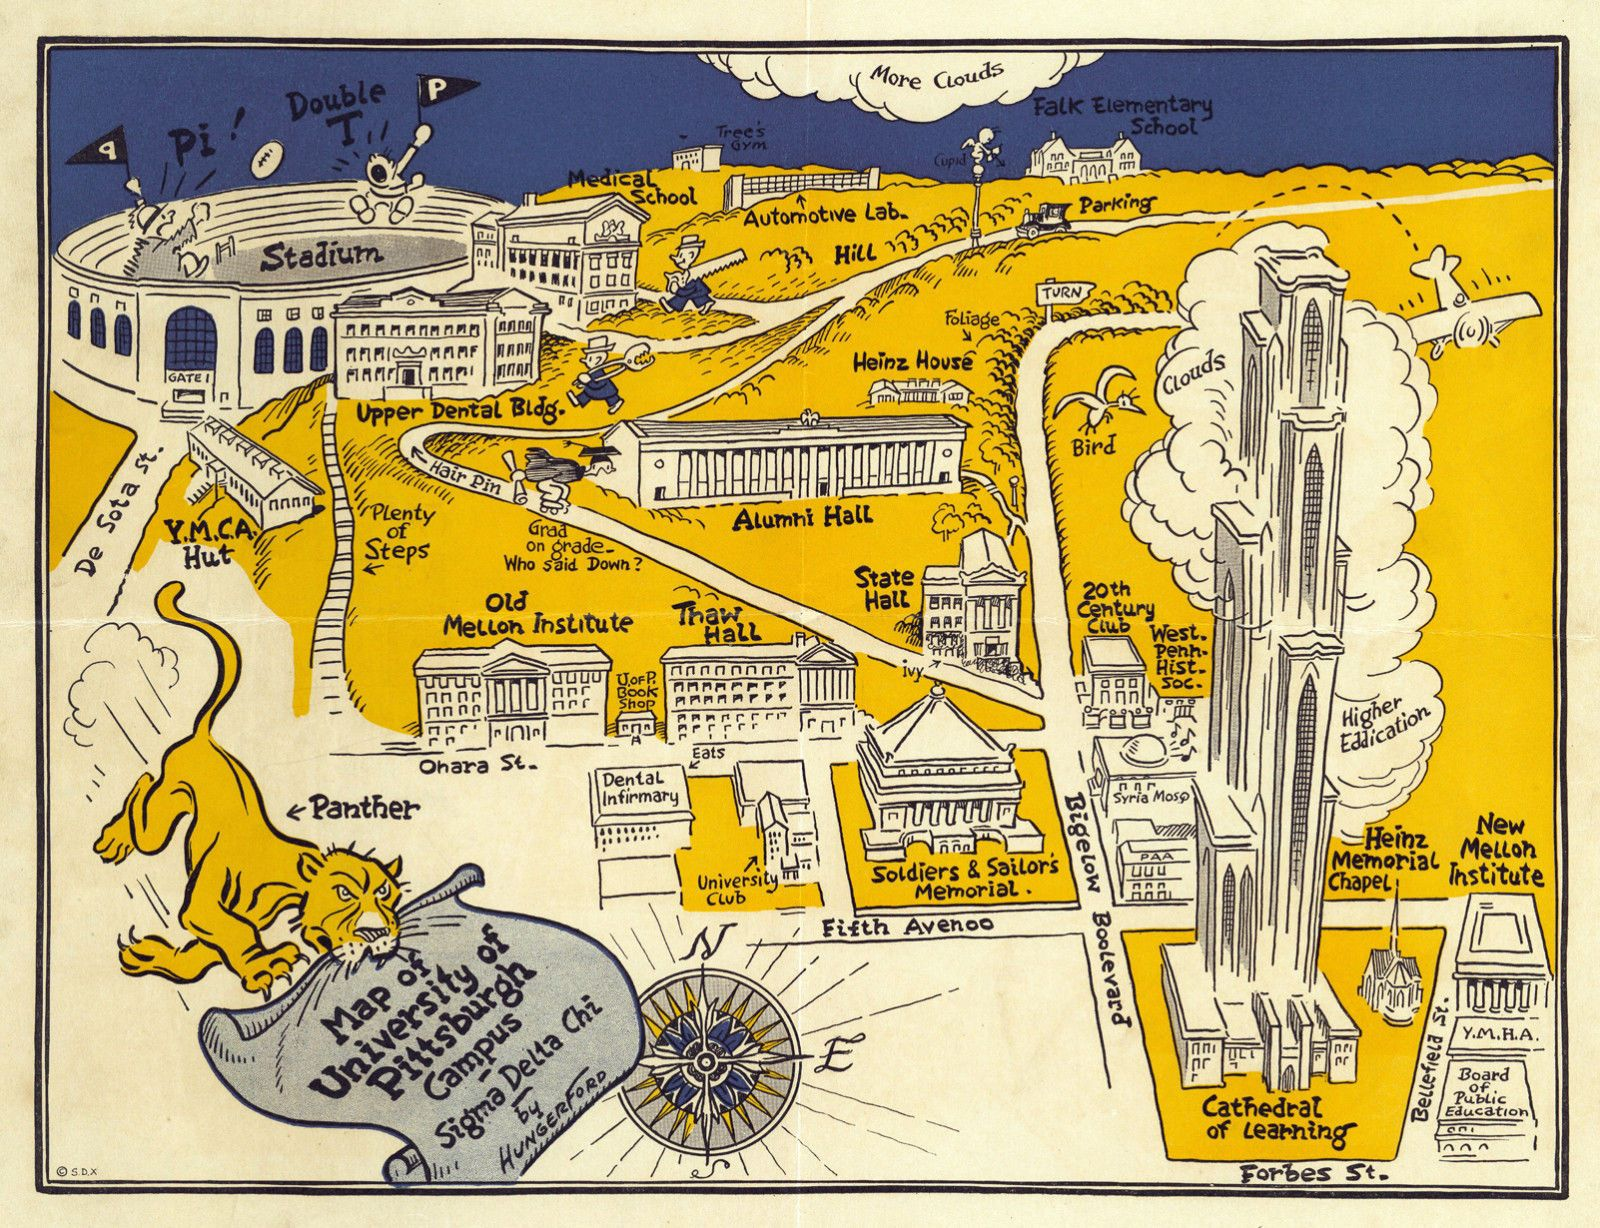 1935 University of Pittsburgh Campus Map Wall Art Poster Print